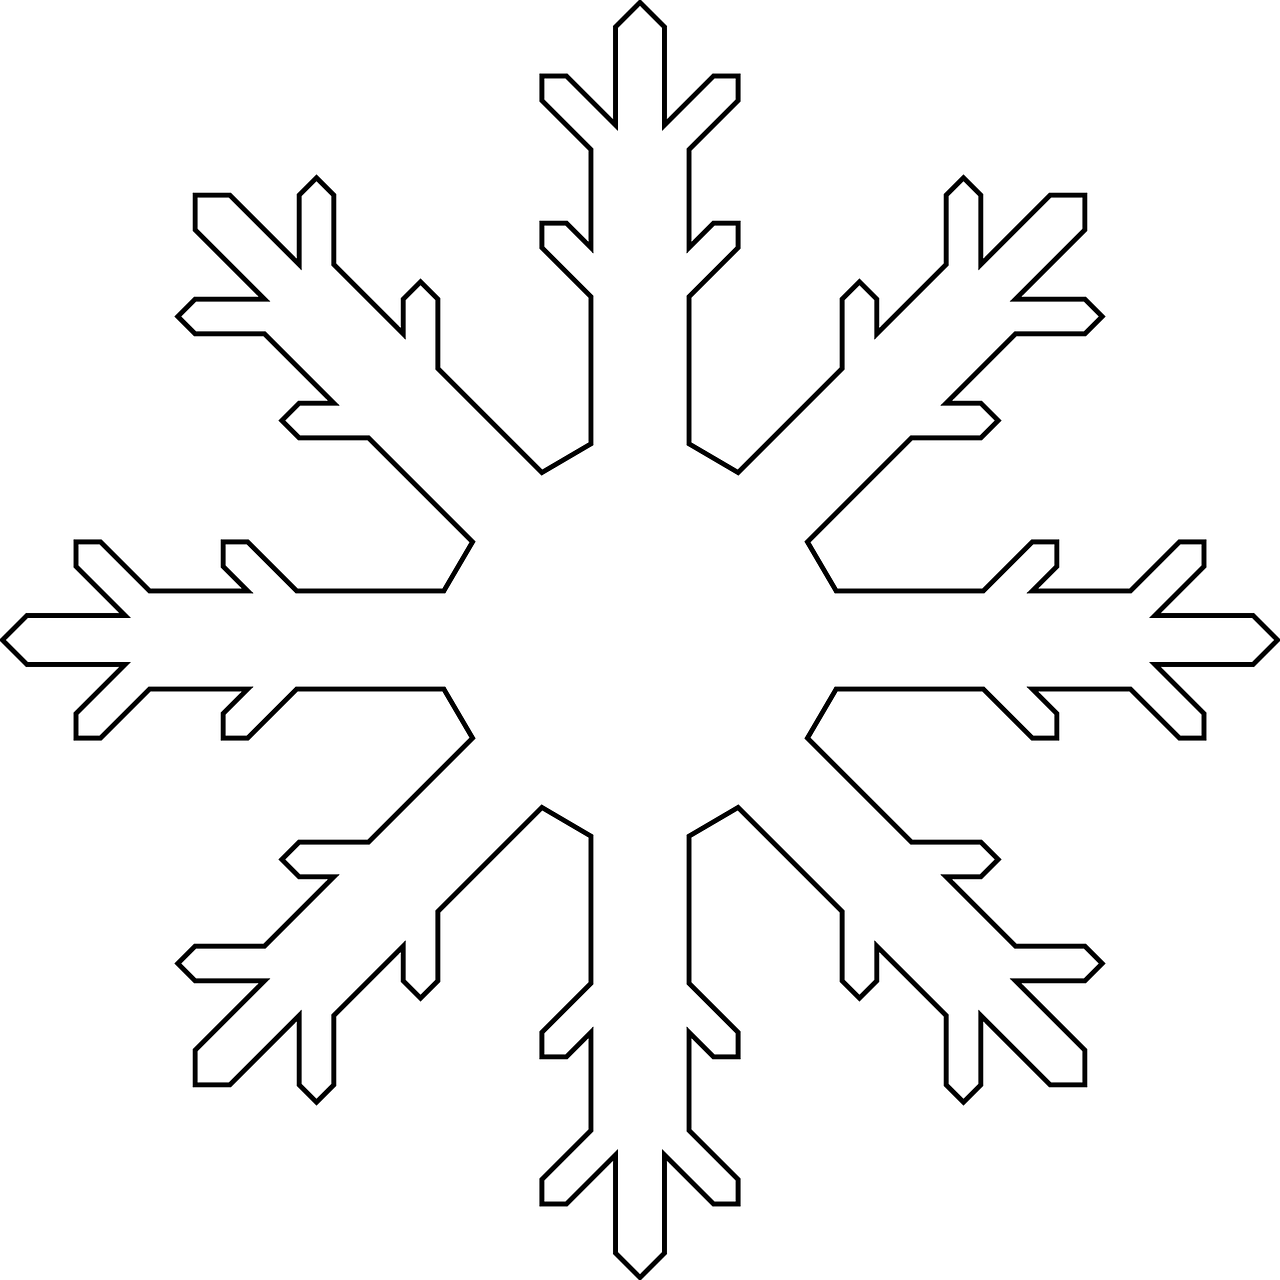 printable snowflake colouring sheet or snowflake template